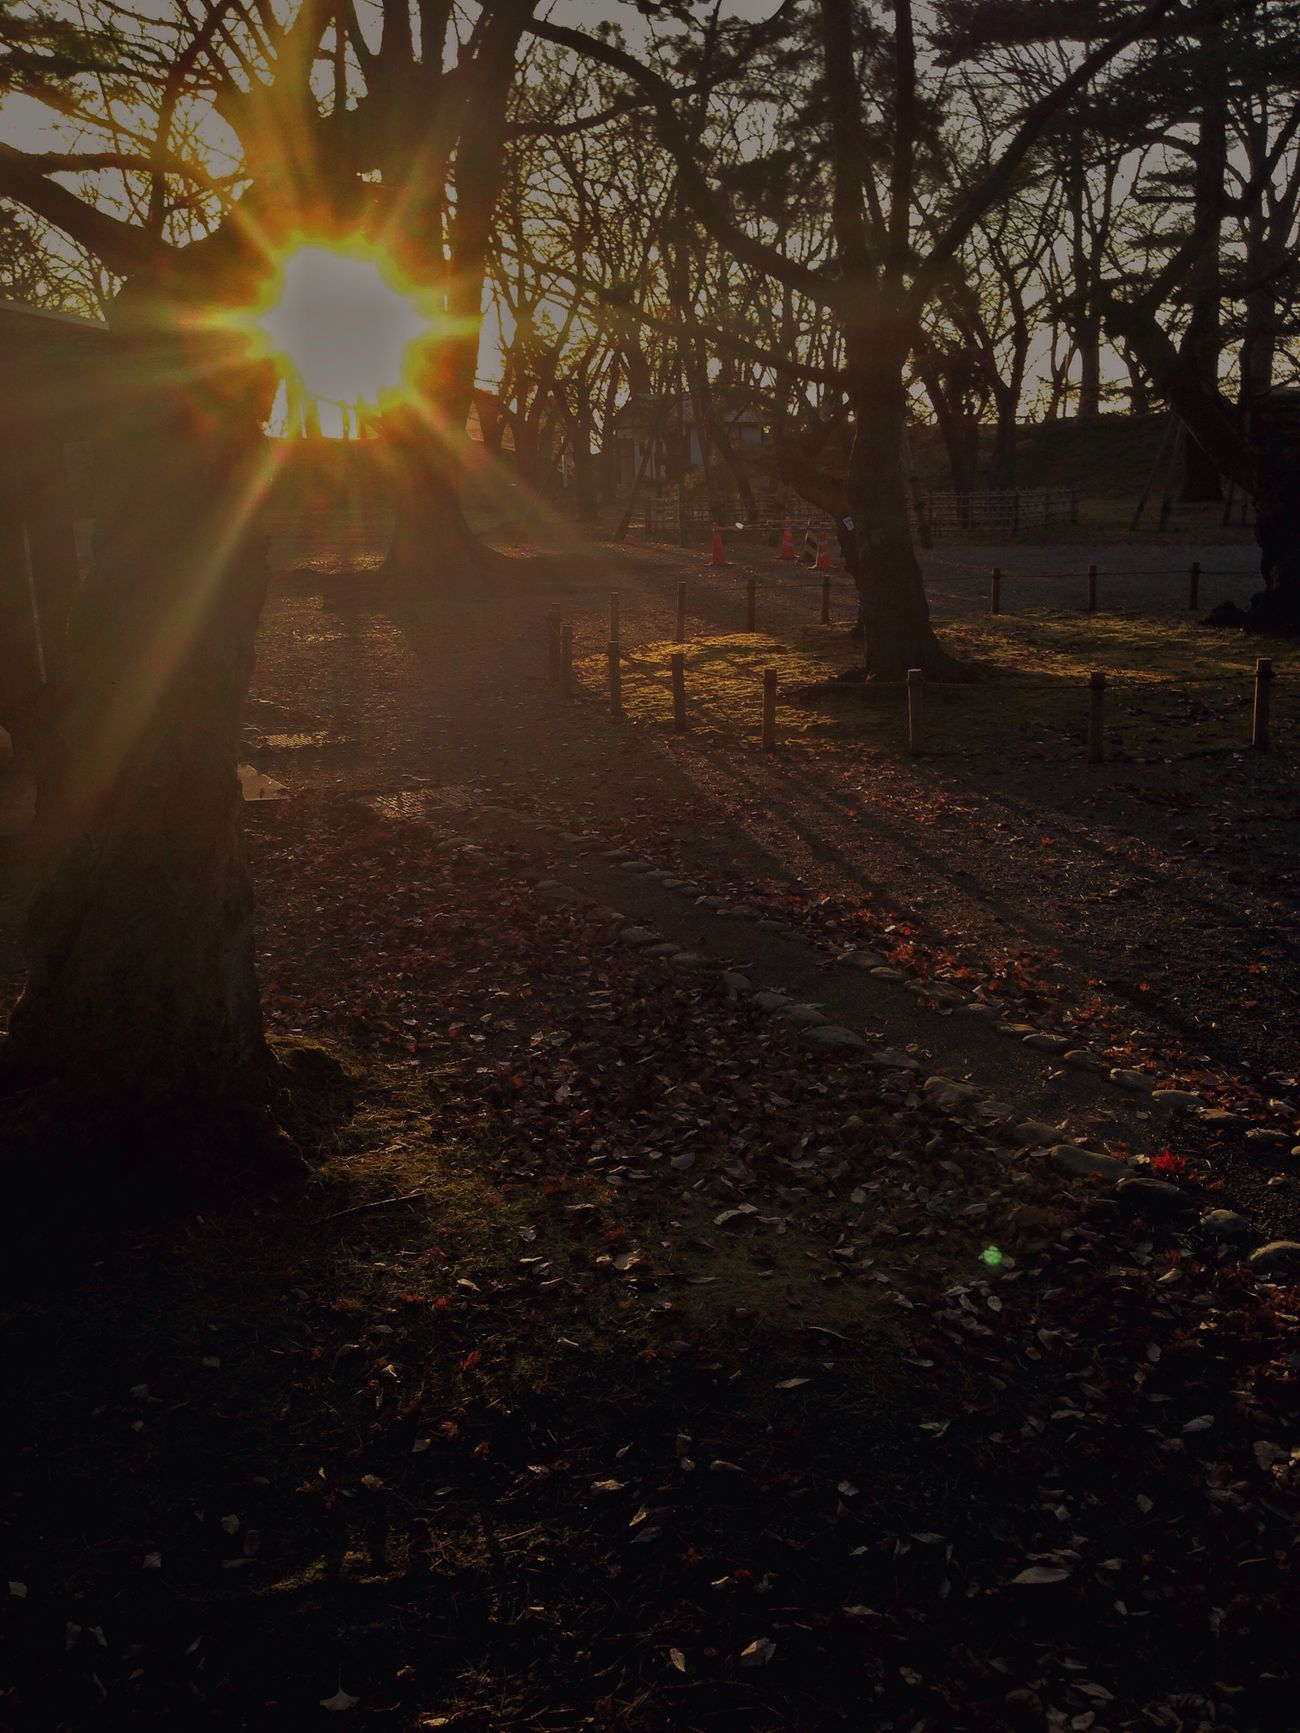 IPhone IPhoneography Mobilephotography Sunlight And Shadow Beauty In Nature Autumn Sunlight No People Autumn Nature Light And Shadow Beauty In Nature EyeEm Nature Lover Golden Hour EvningGlow